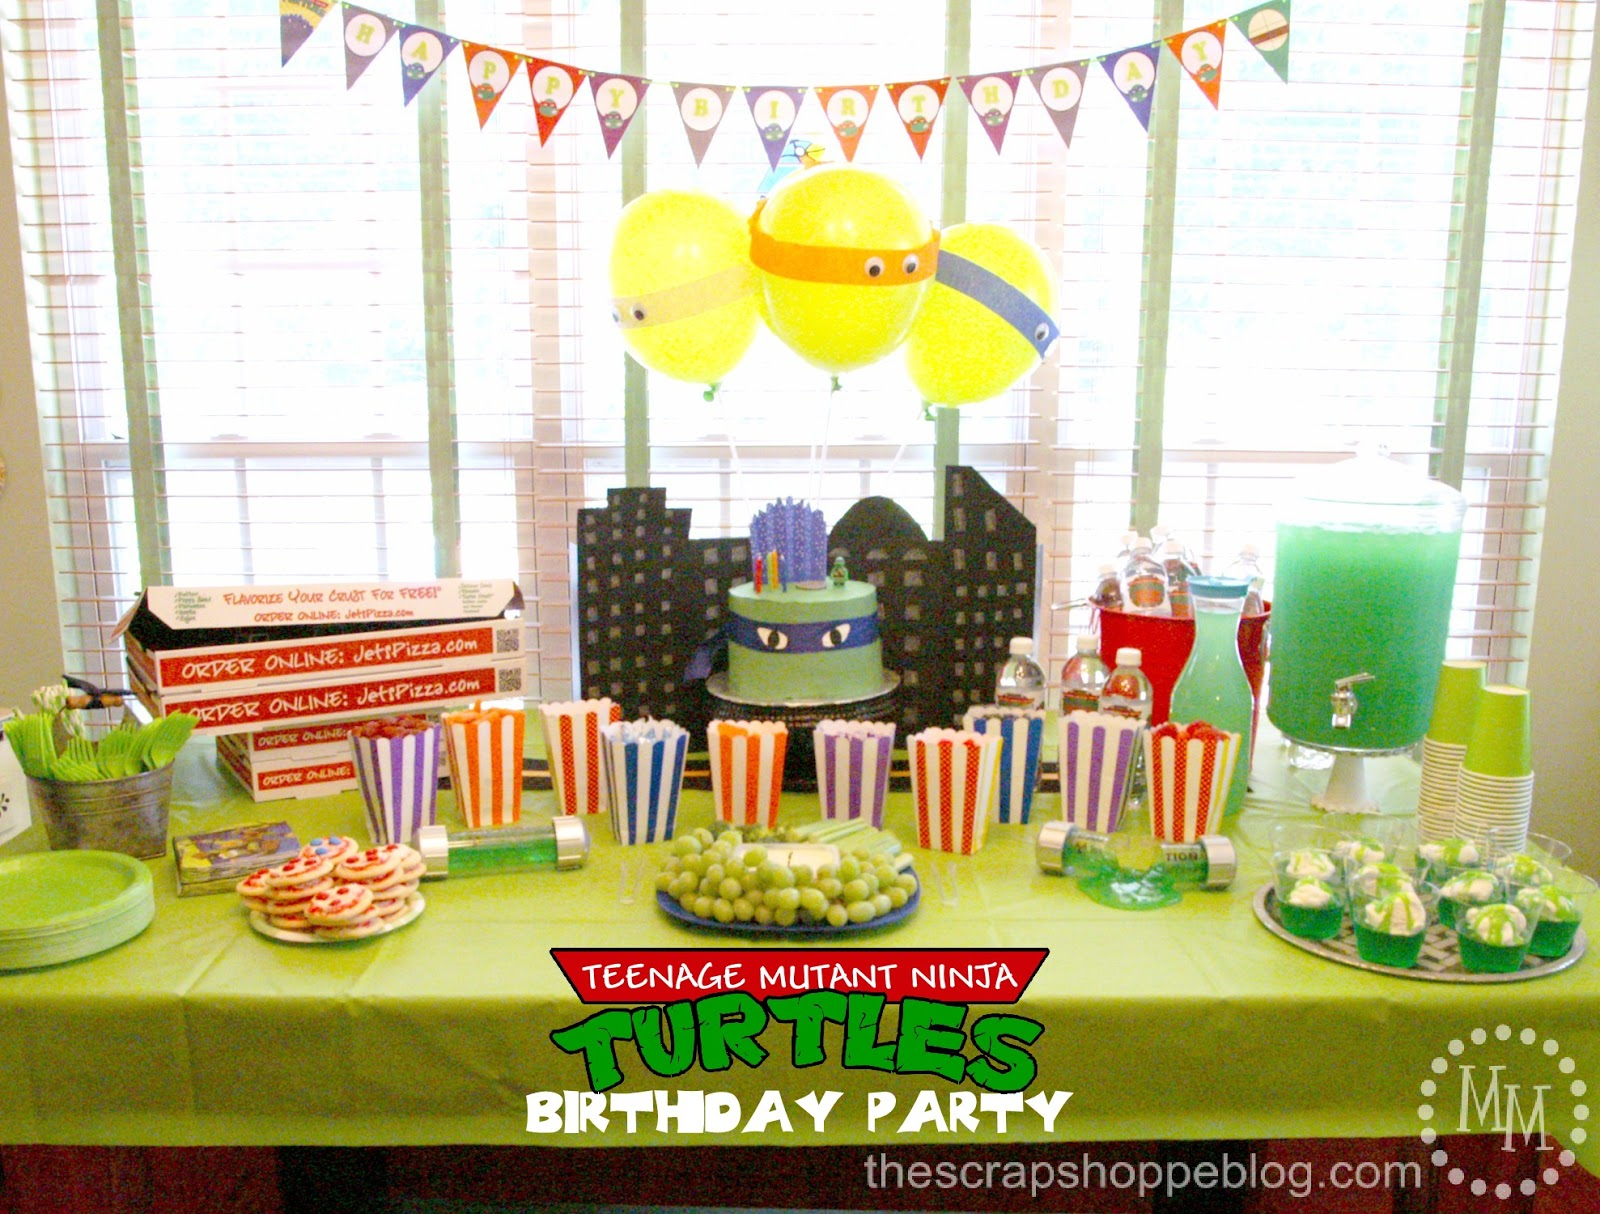 Teenage Mutant Ninja Turtle (TMNT) Birthday Party - The Scrap Shoppe